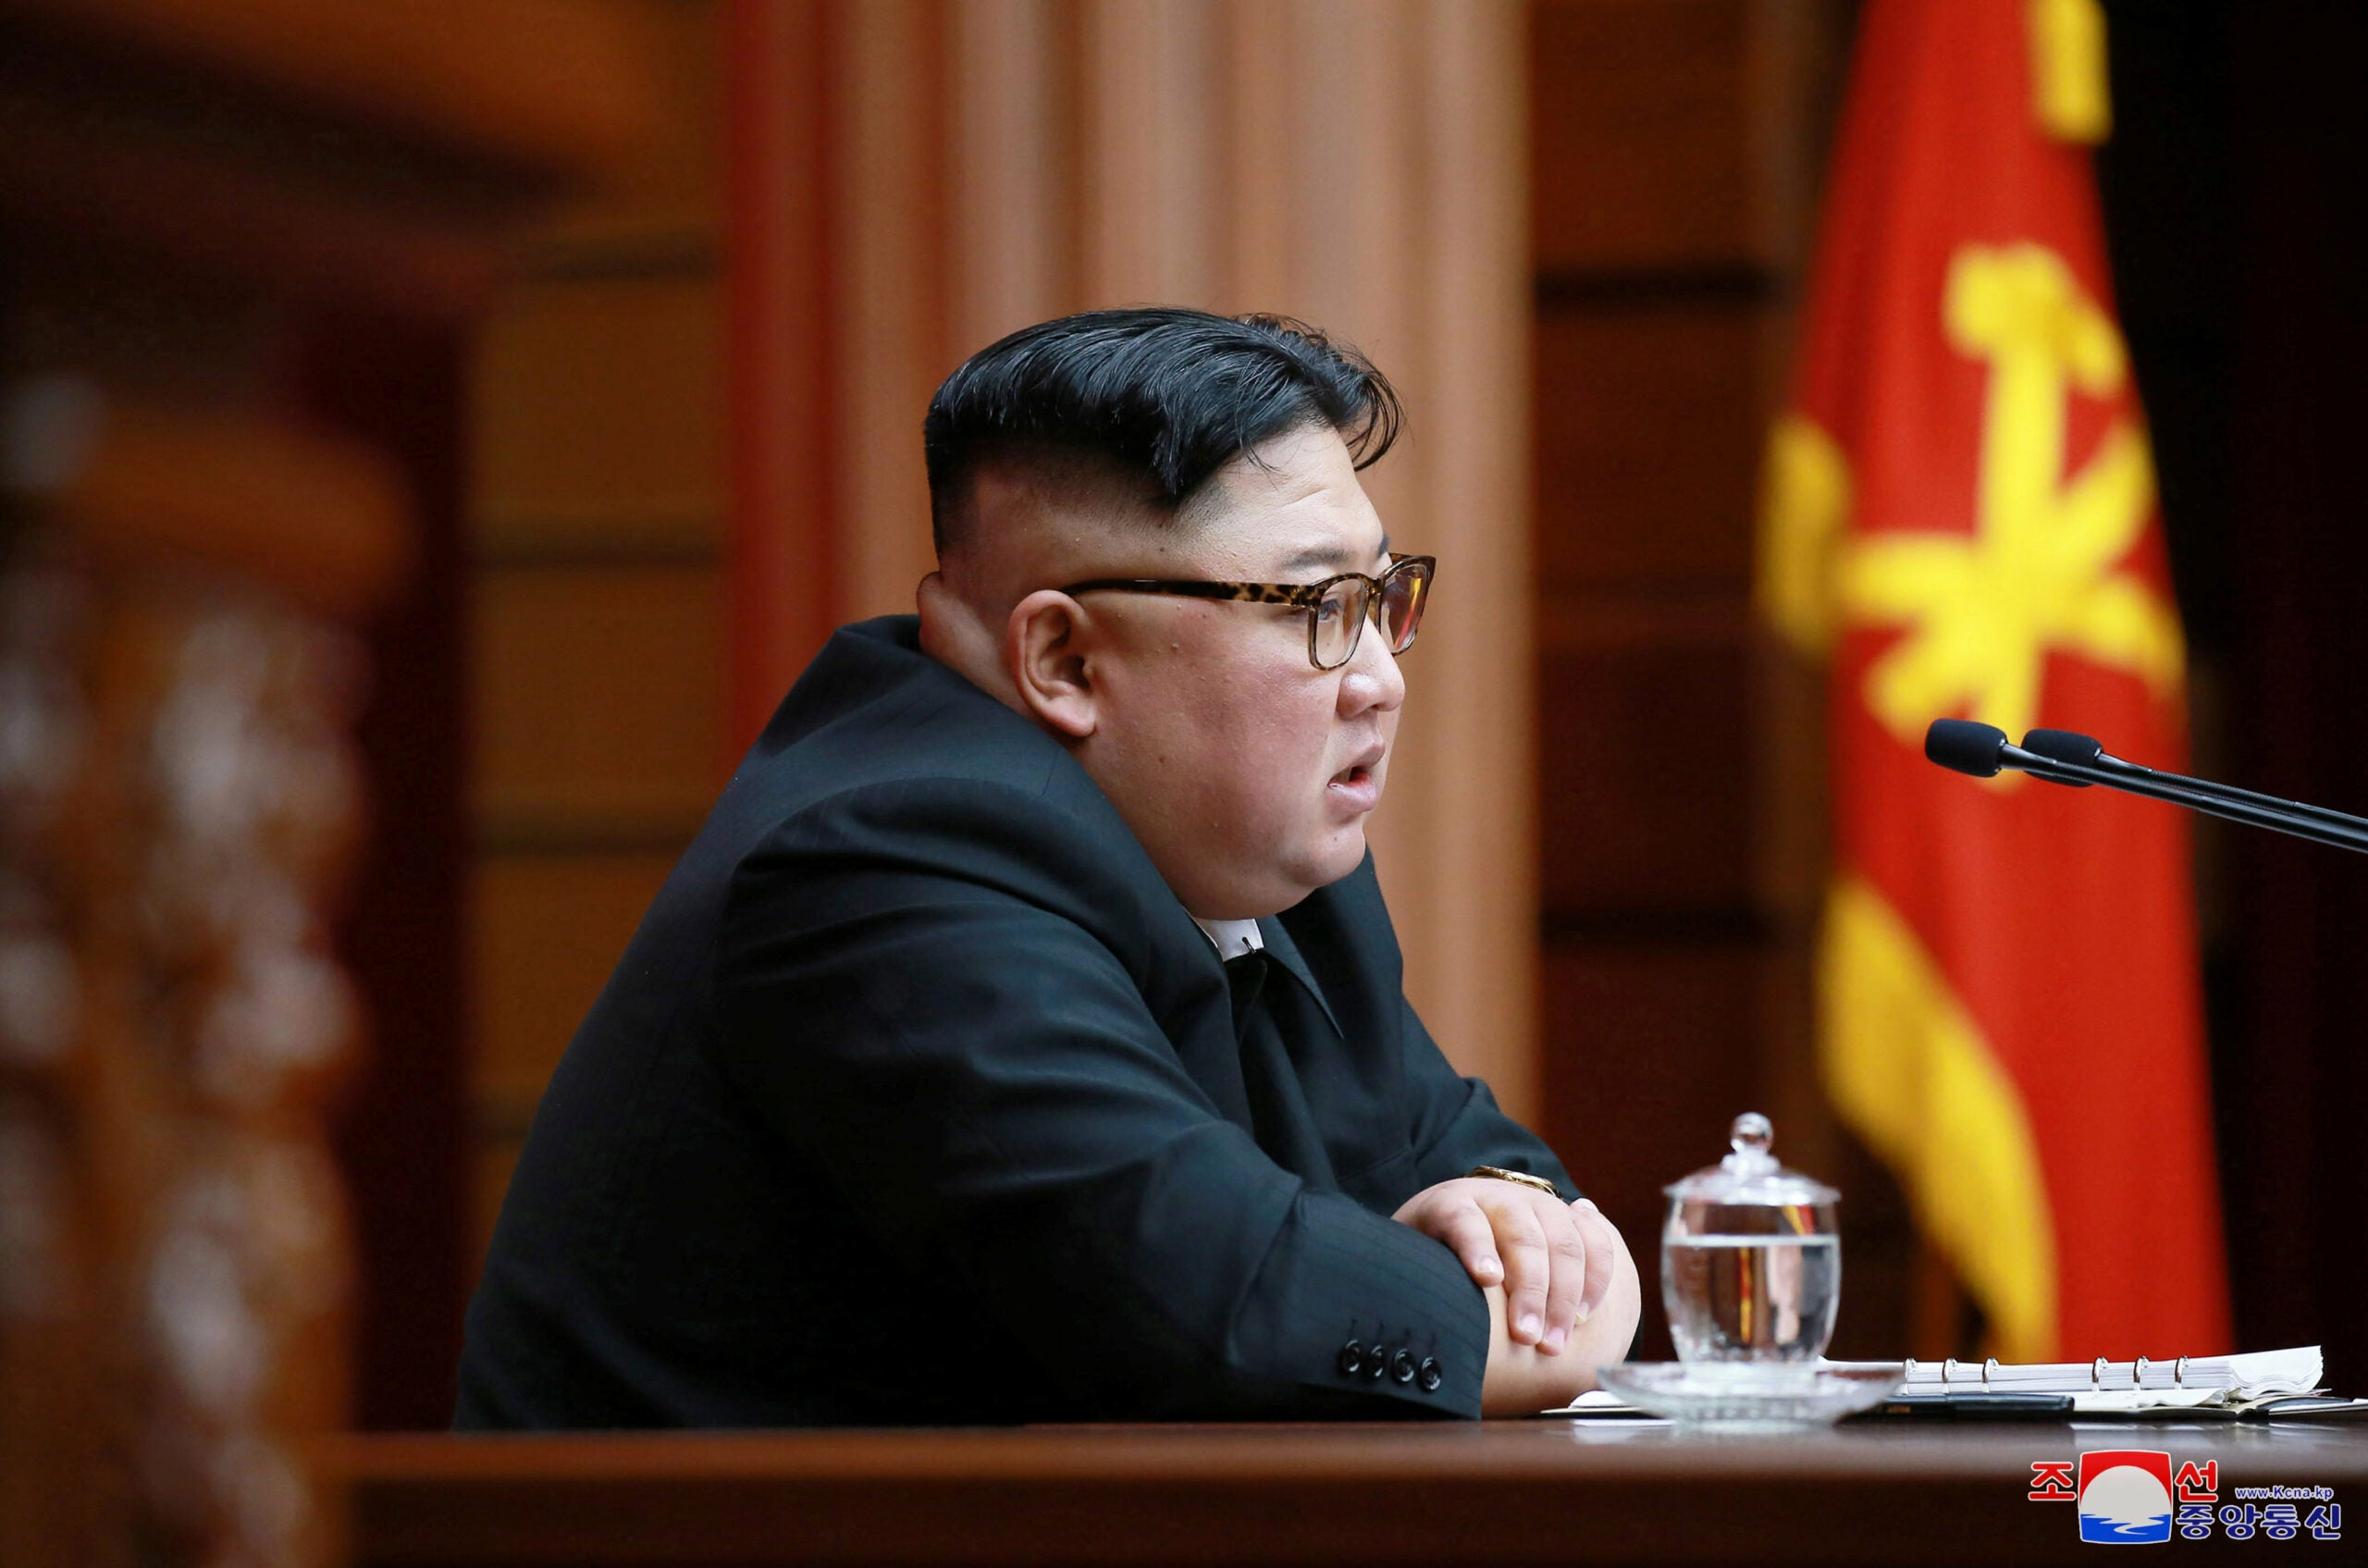 Here's who could be next in line to take over in North Korea after Kim Jong Un